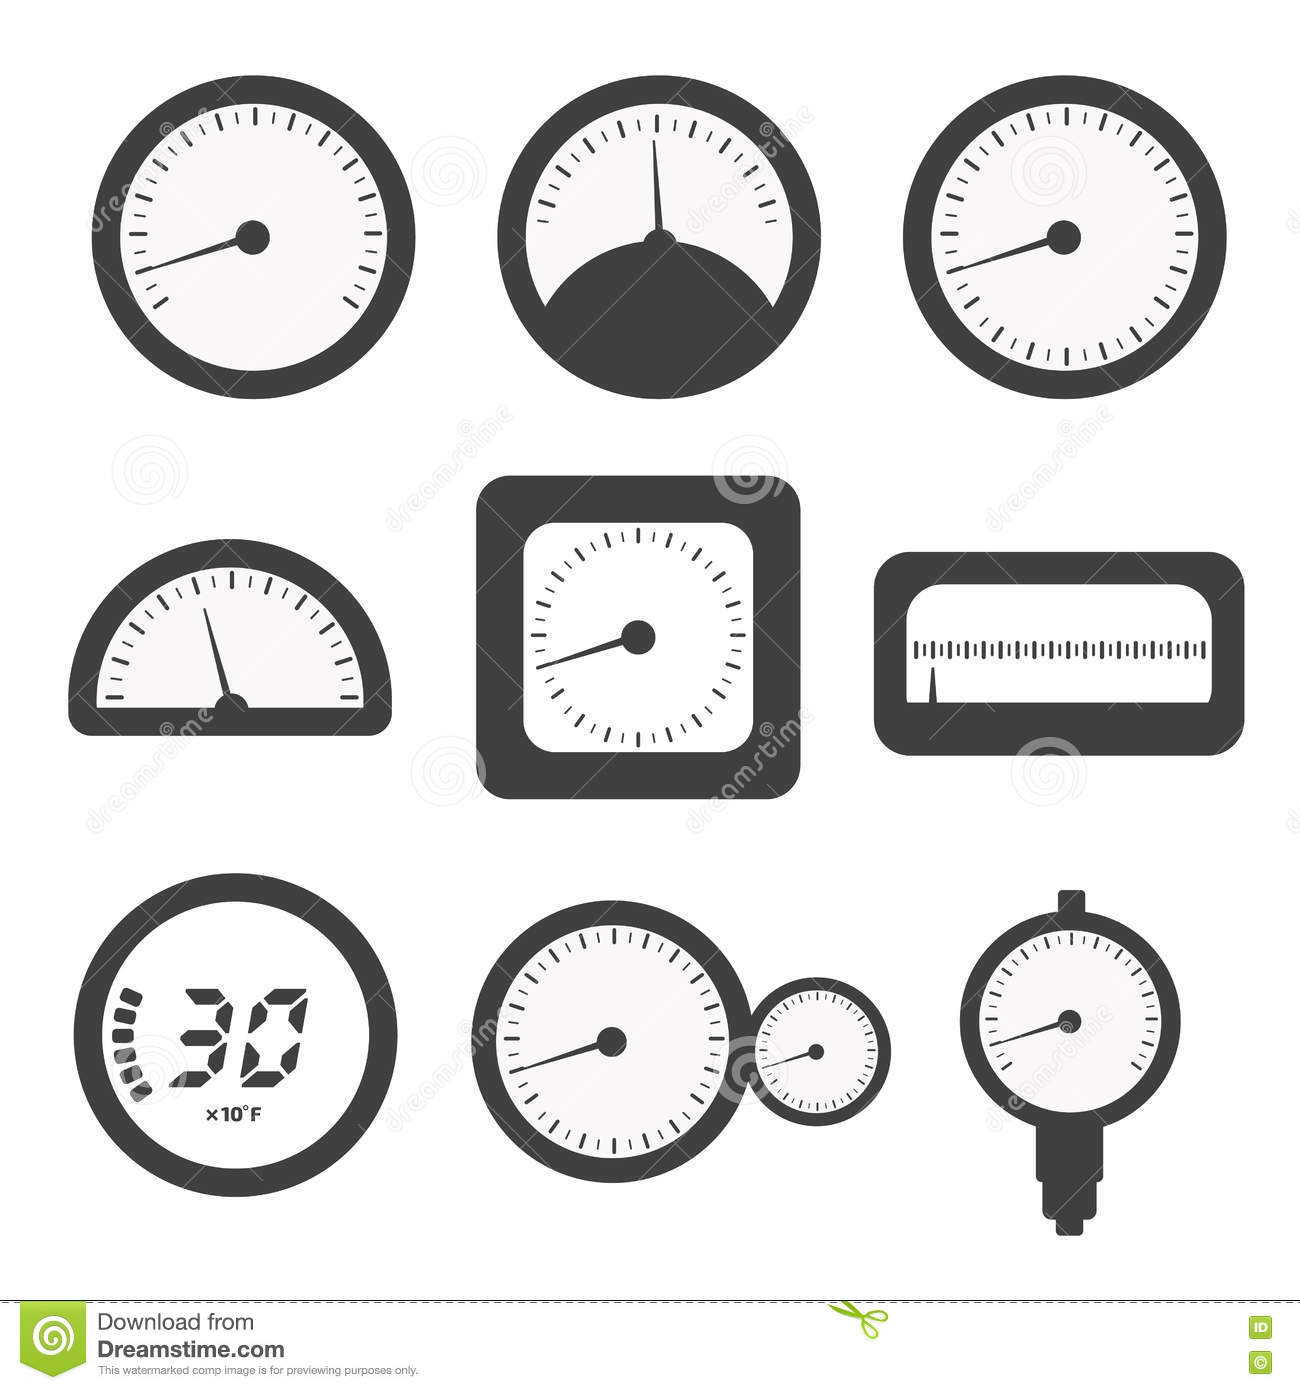 Manometer Stock Illustrations – 1,820 Manometer Stock Illustrations ...